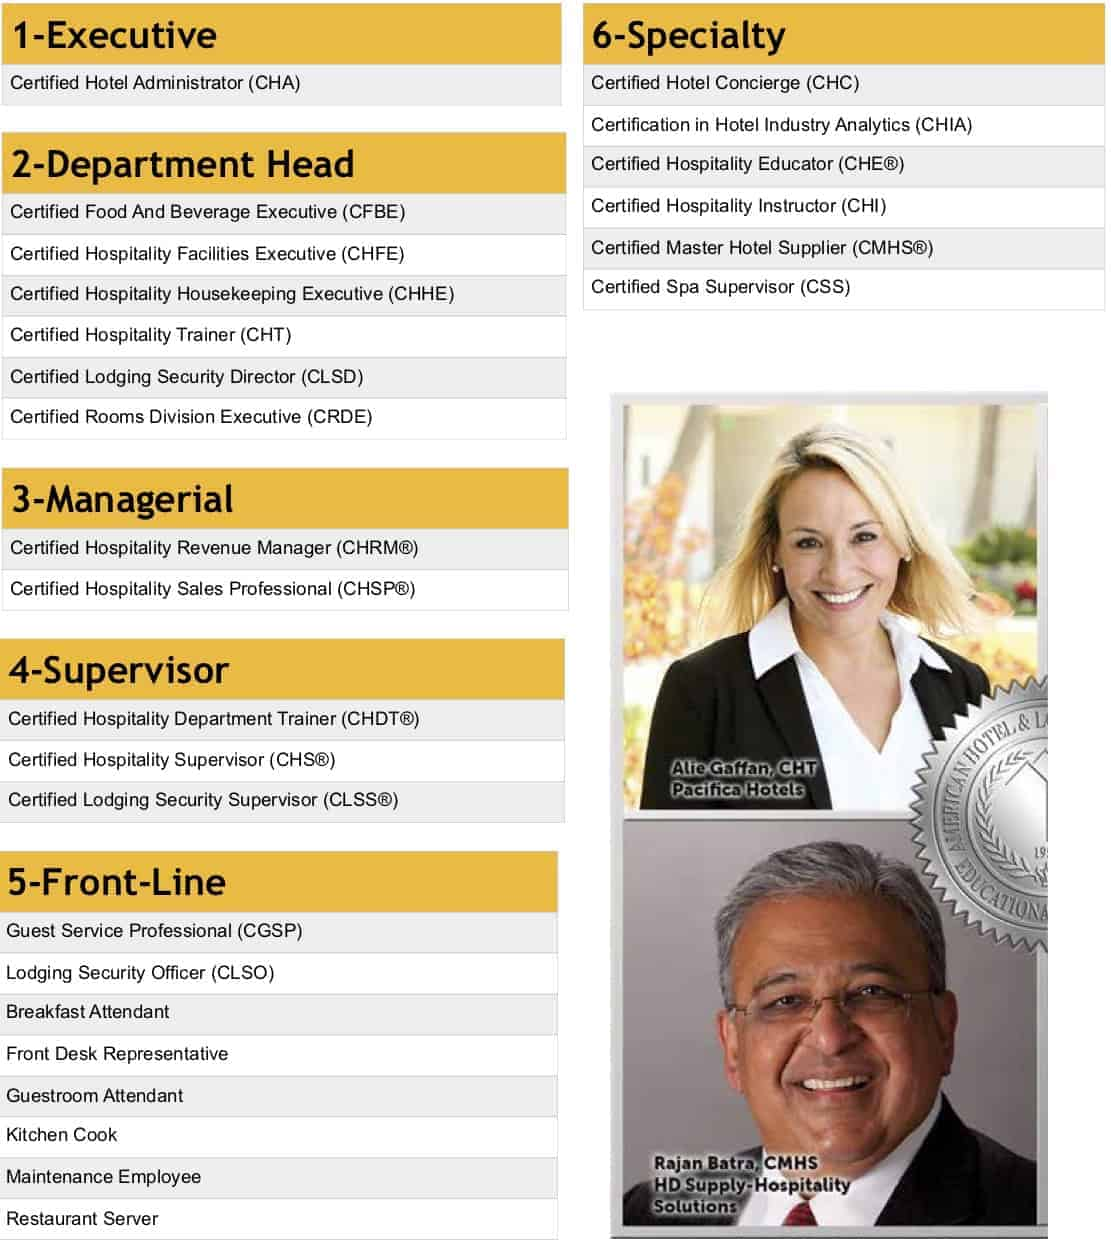 American Certifications For Hospitality Professionals Cothm Dubai